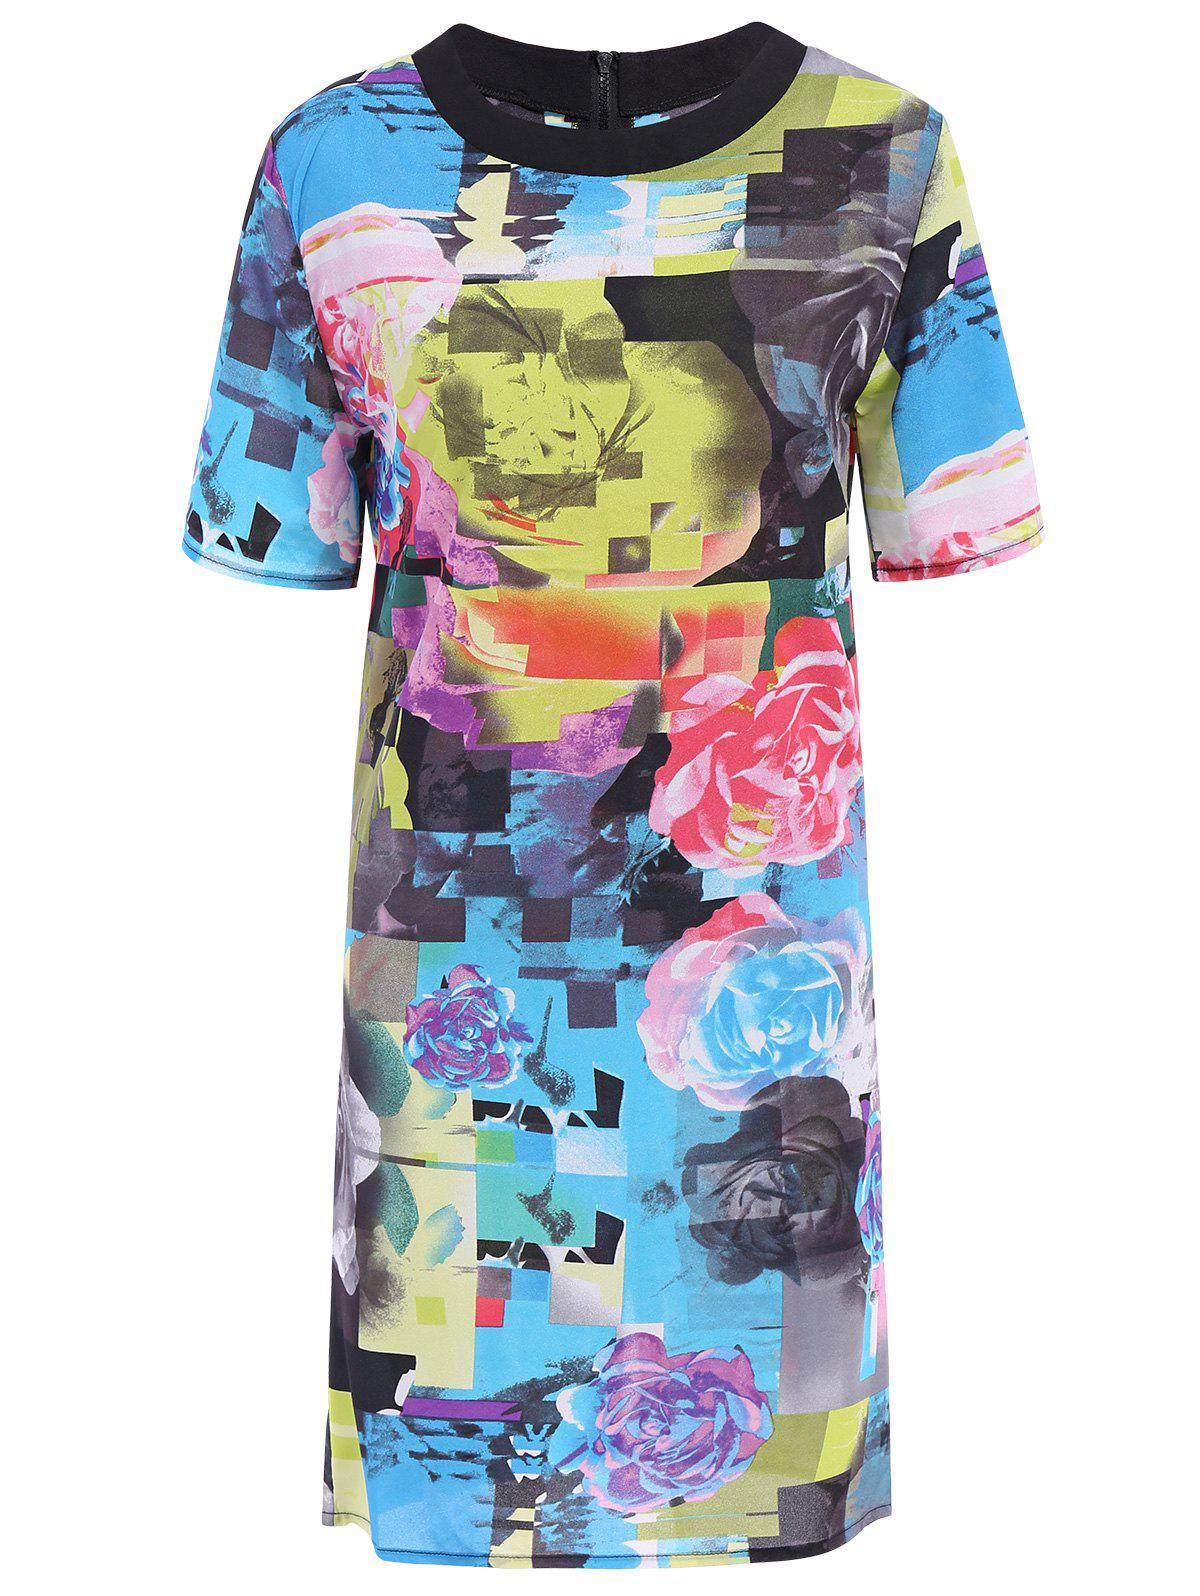 Stylish Round Neck Short Sleeve Floral Print Colored Women's Dress - COLORMIX S